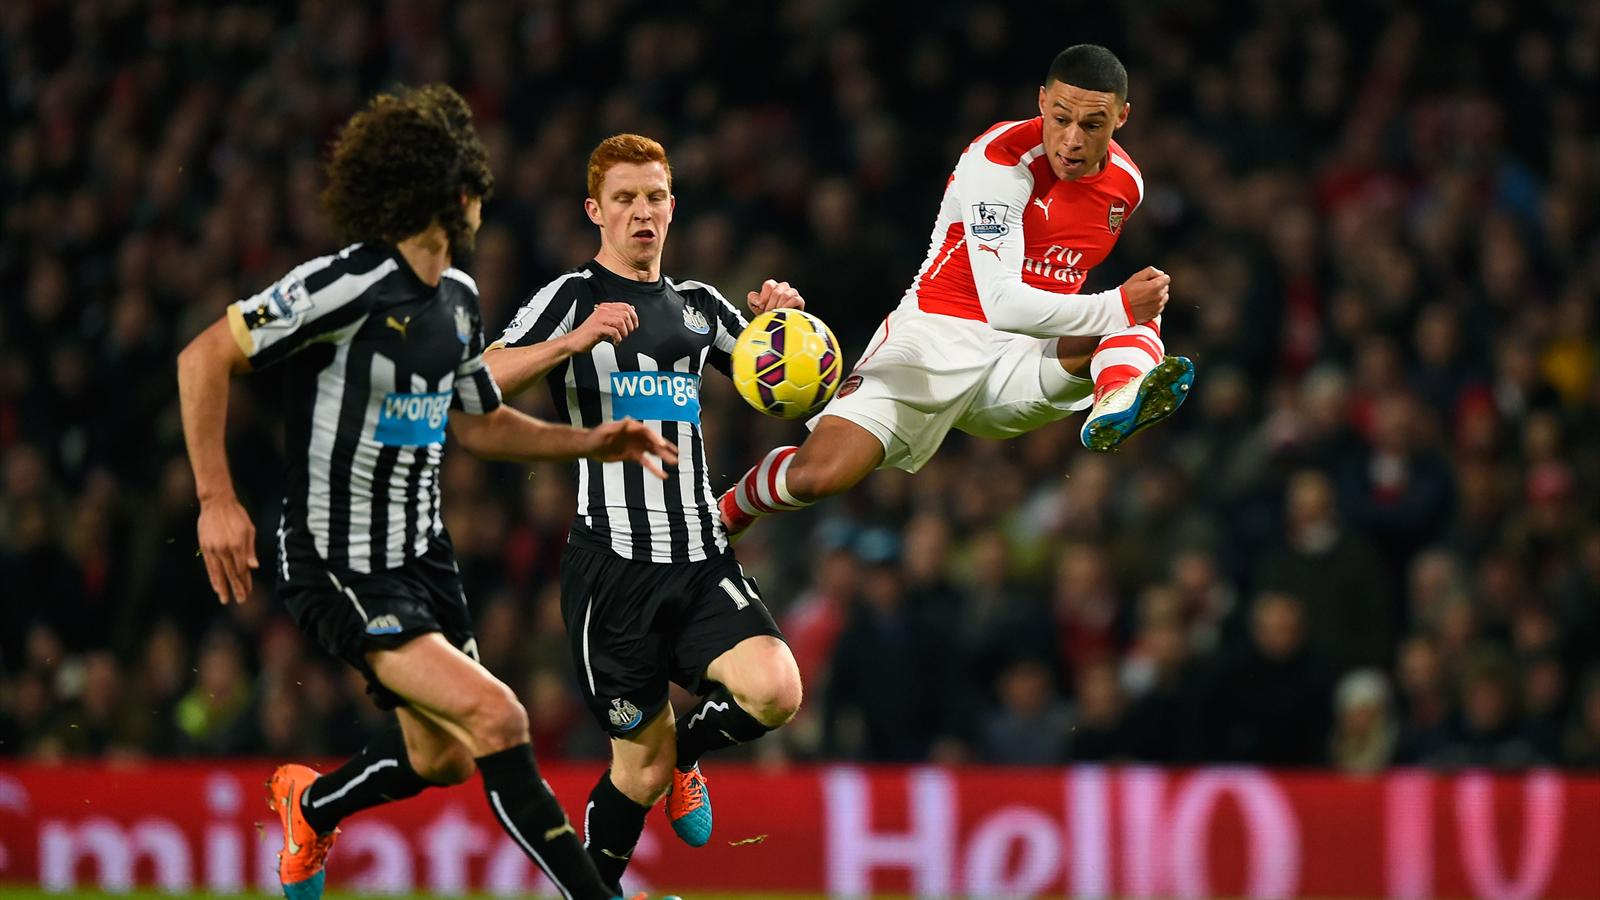 Alex Oxlade-Chamberlain of Arsenal controls the ball under pressure from Newcastle players.